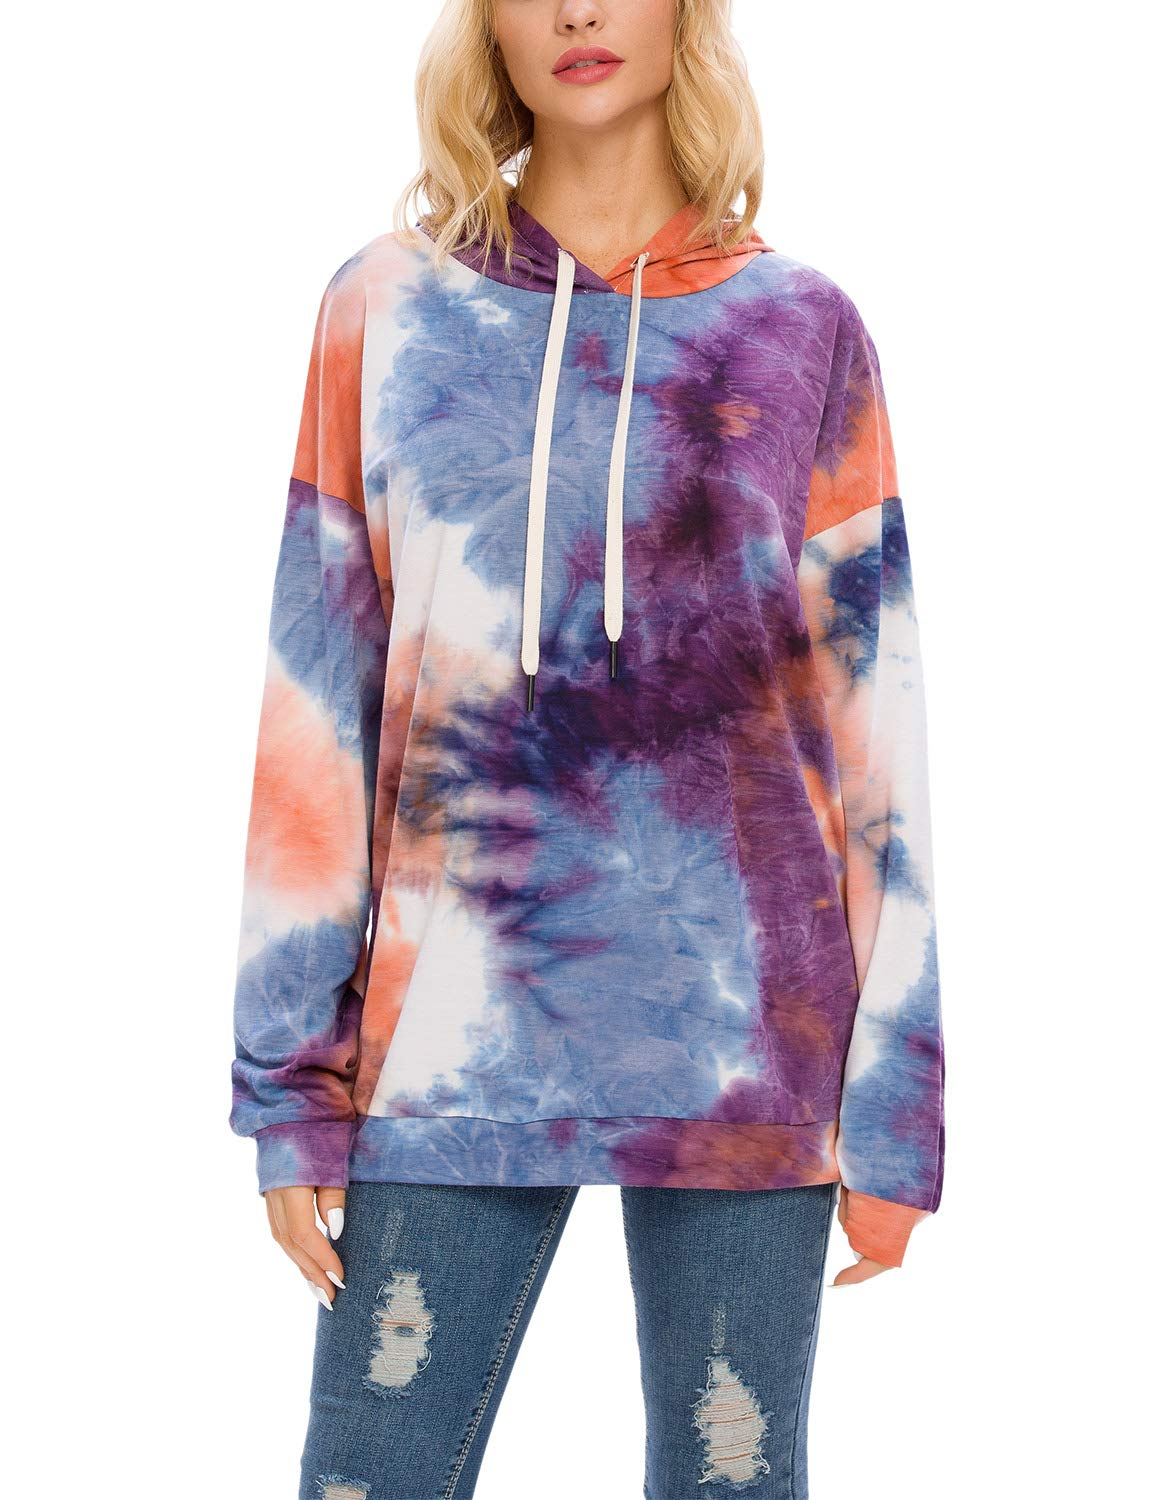 Blooming Jelly Women's Pullover Tie Dye Hoodie Hooded Crew Neck Sweatshirt Ombre Top(S, Hooded)